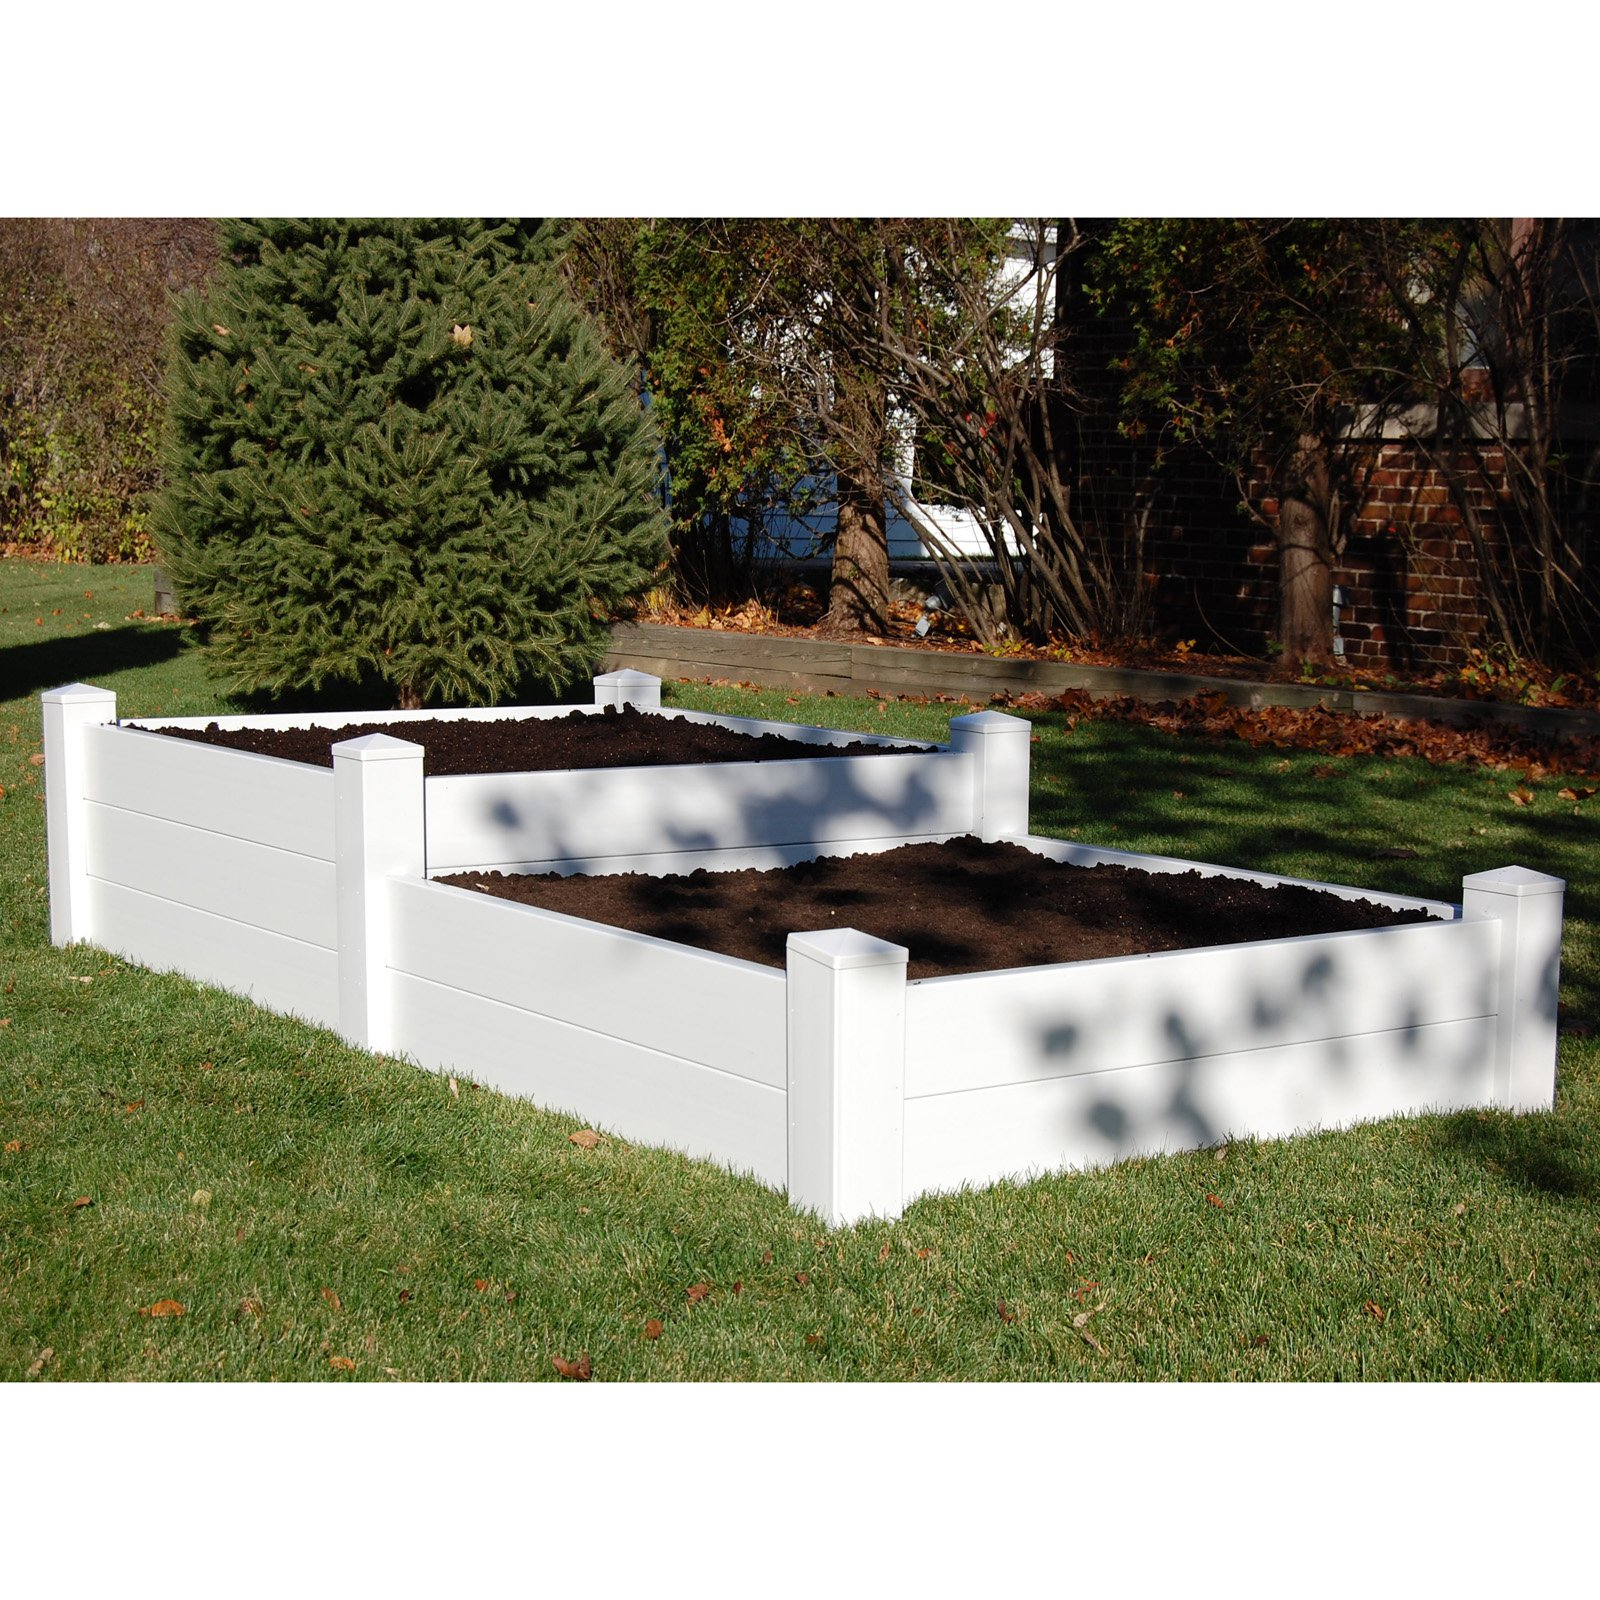 Dura-Trel 4 x 8 Rectangle Split Level Raised Planter Bed by Dura-Trel Inc